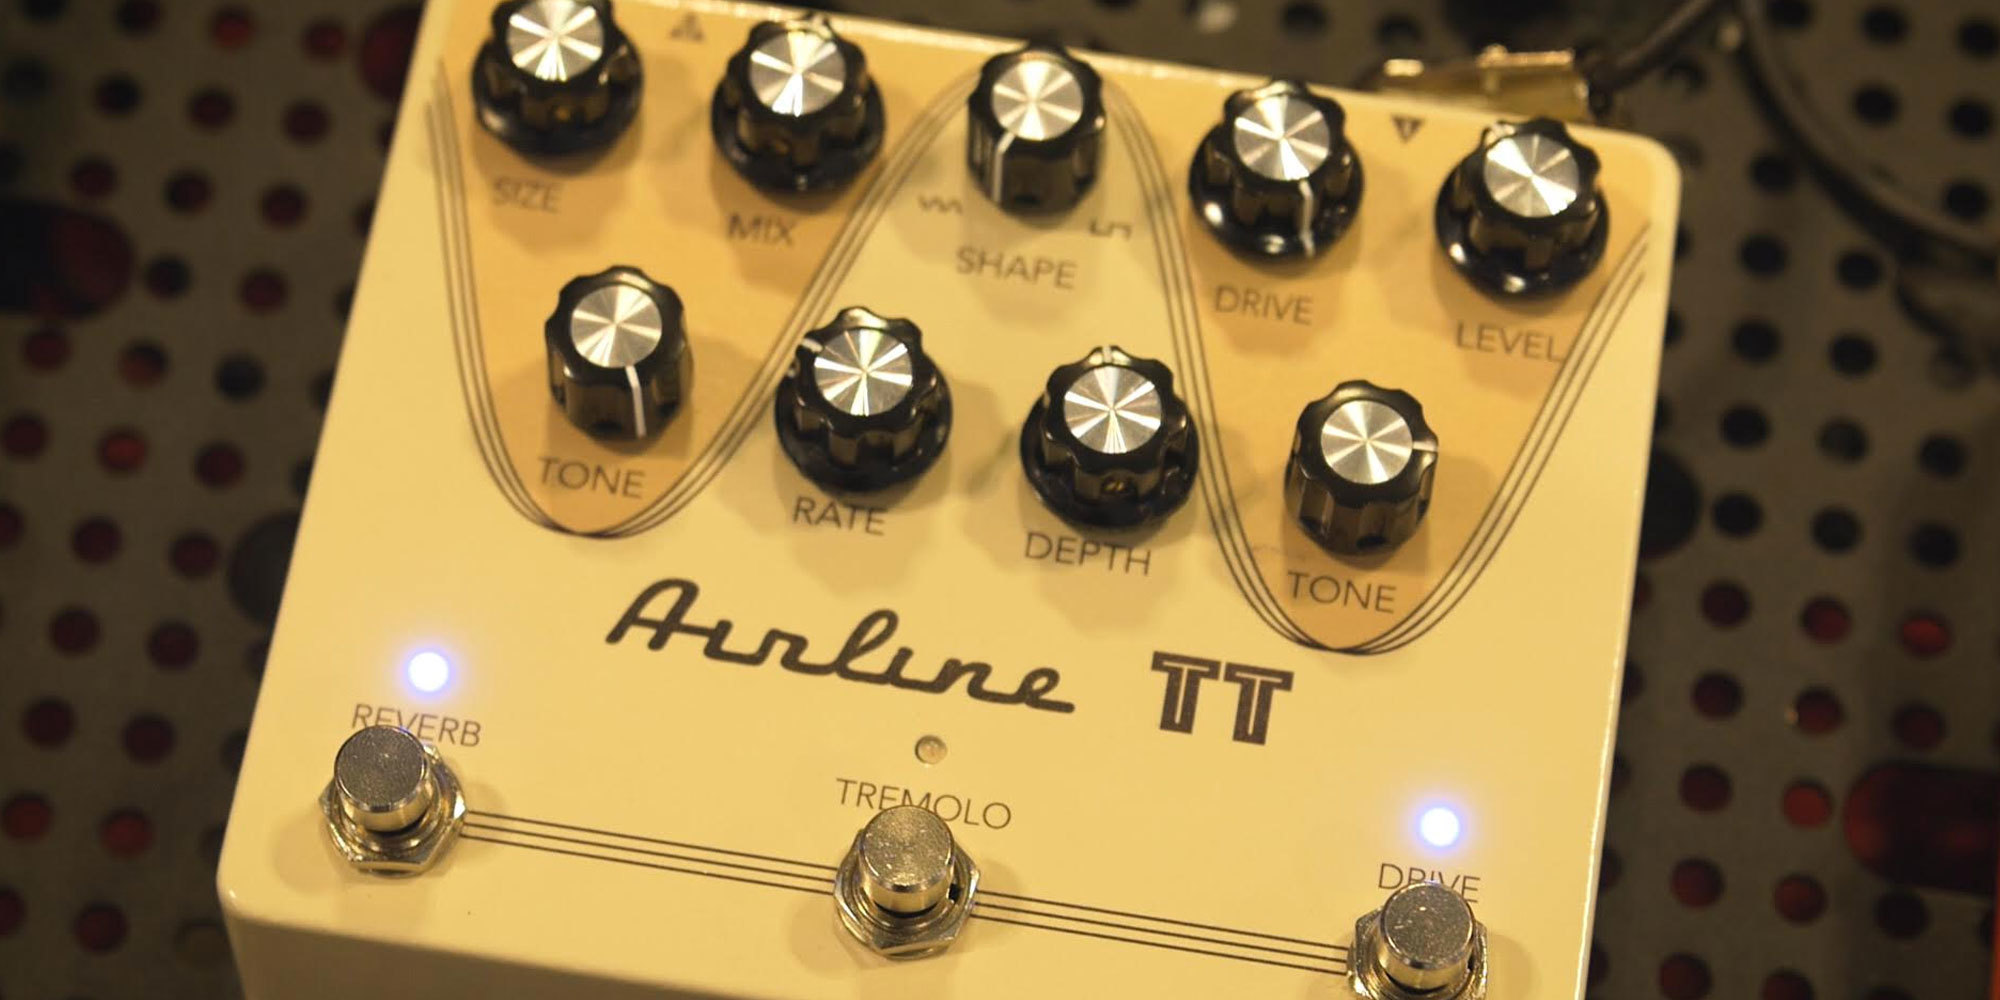 Eastwood Airline SFO Octave and TT Tremolo